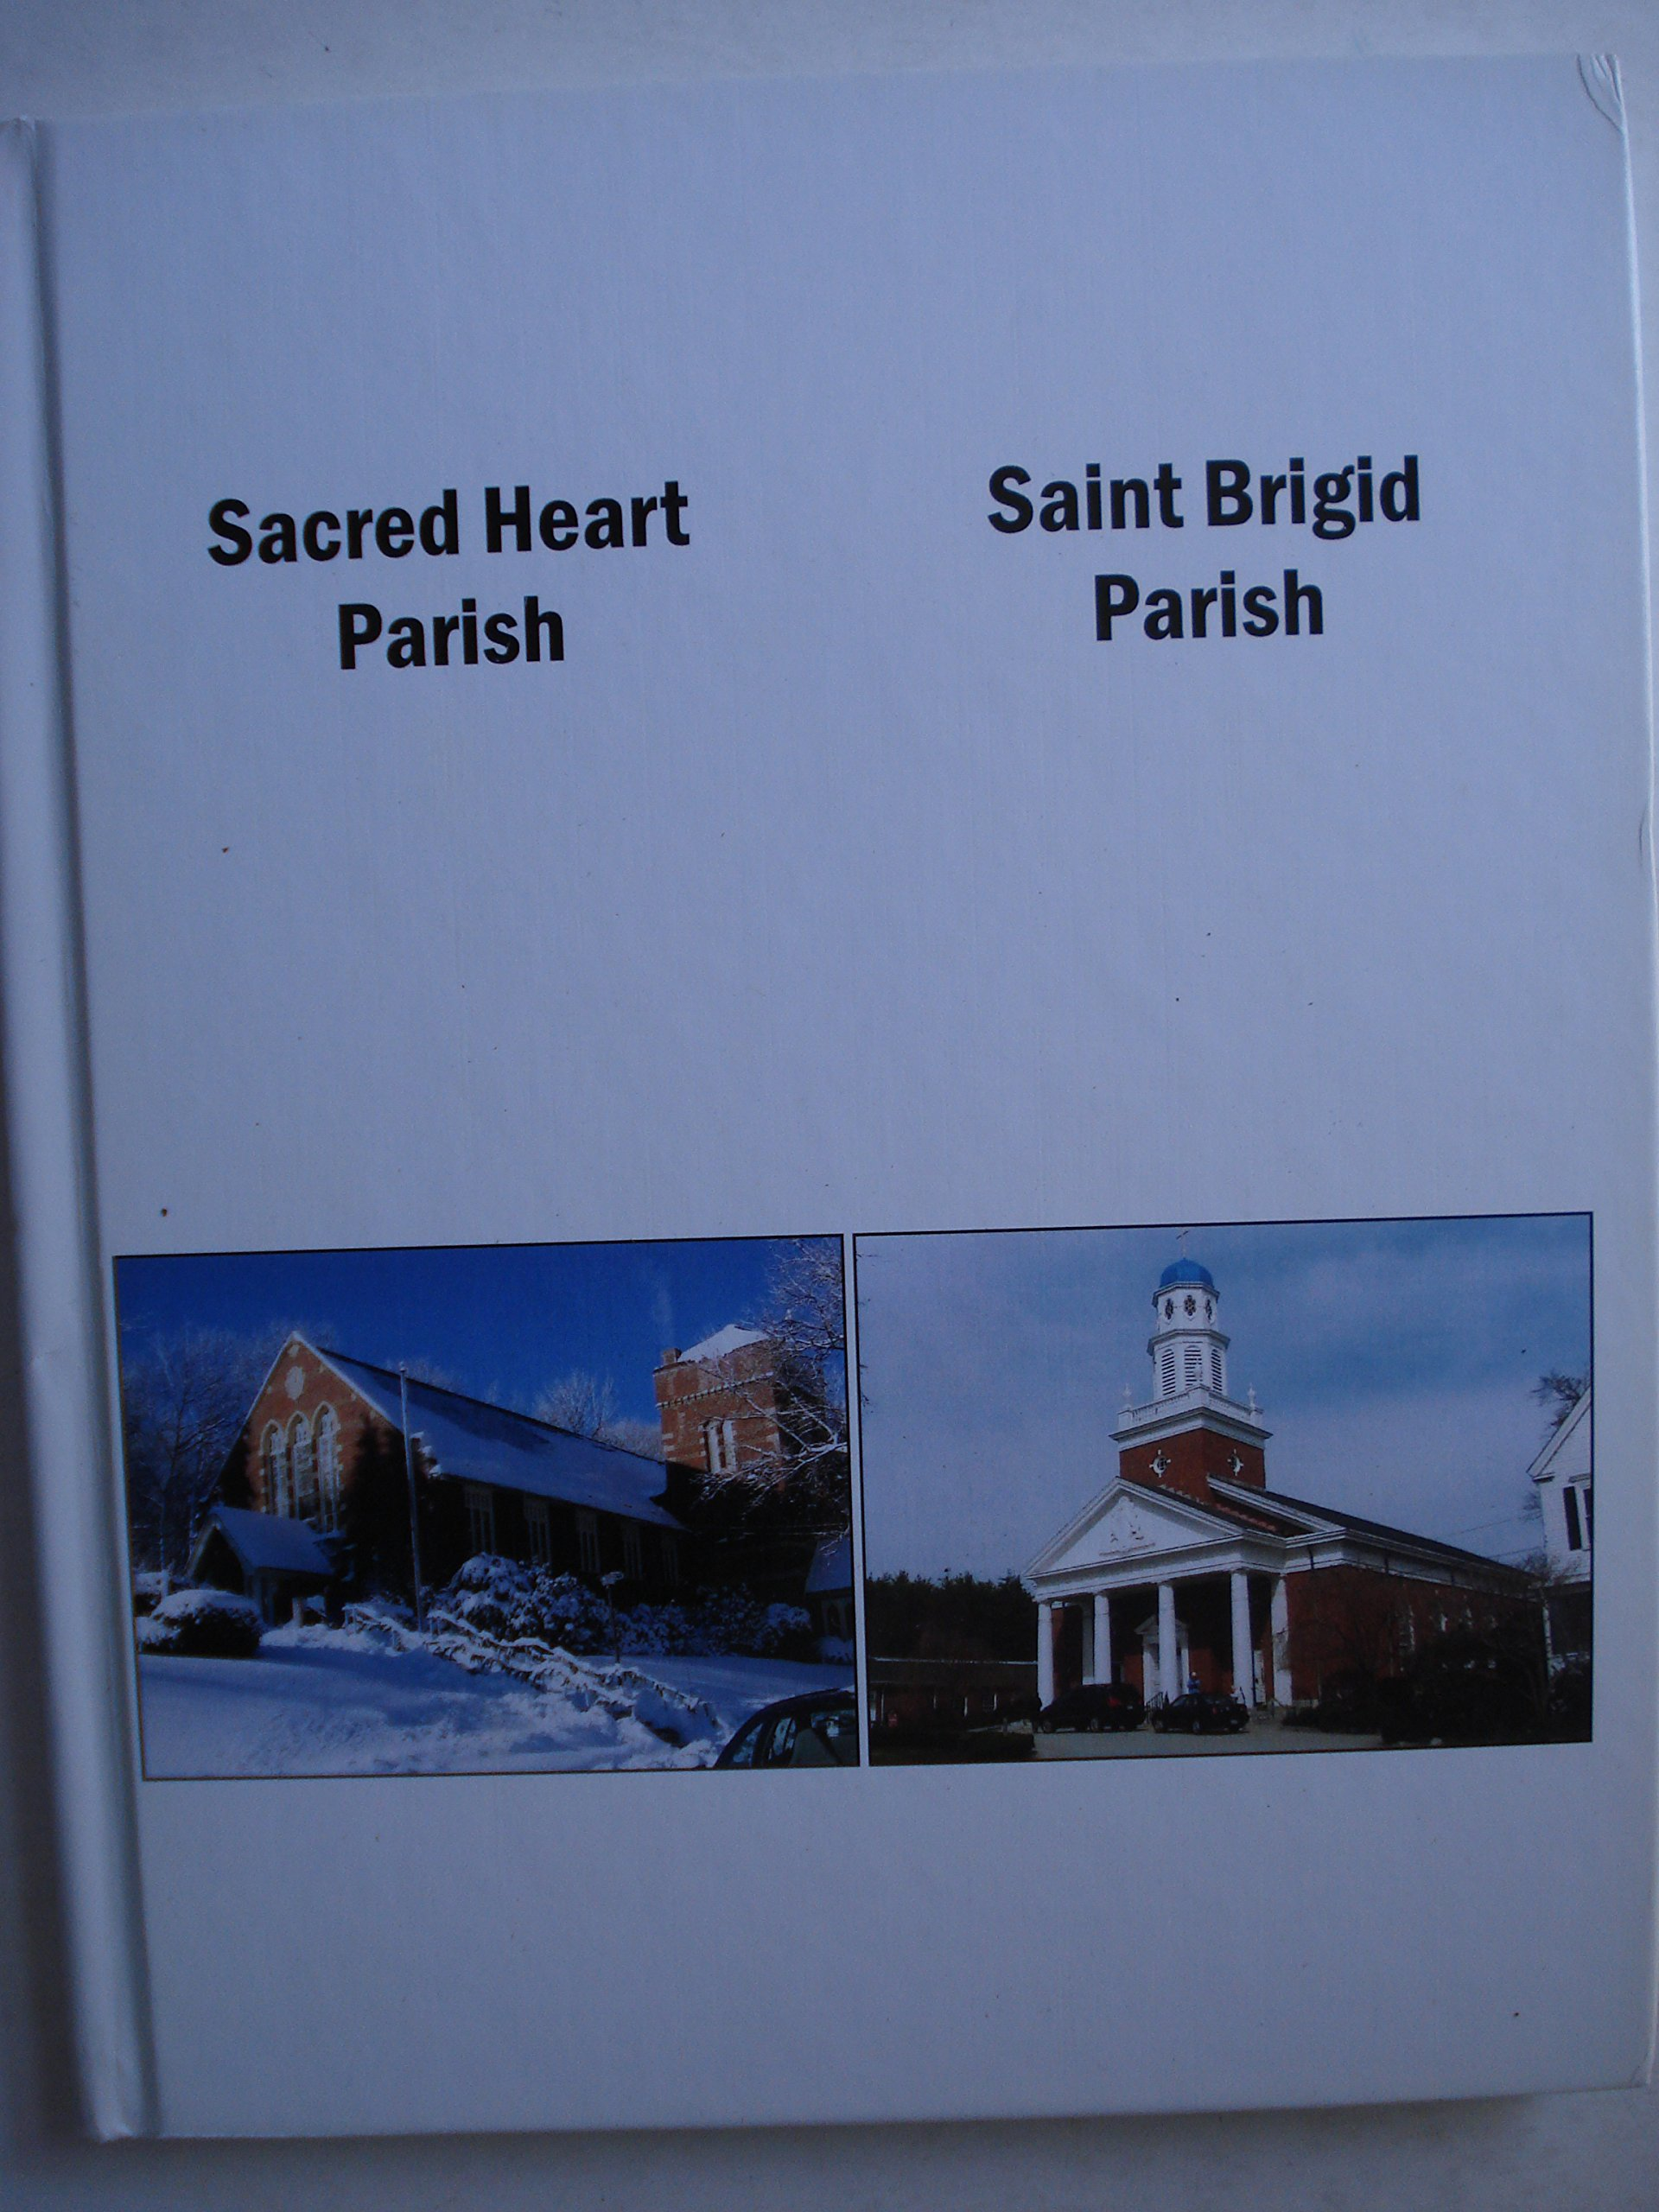 Download Sacred Heart Parish & Saint Brigid Parish Lexington MA Church Directory PDF